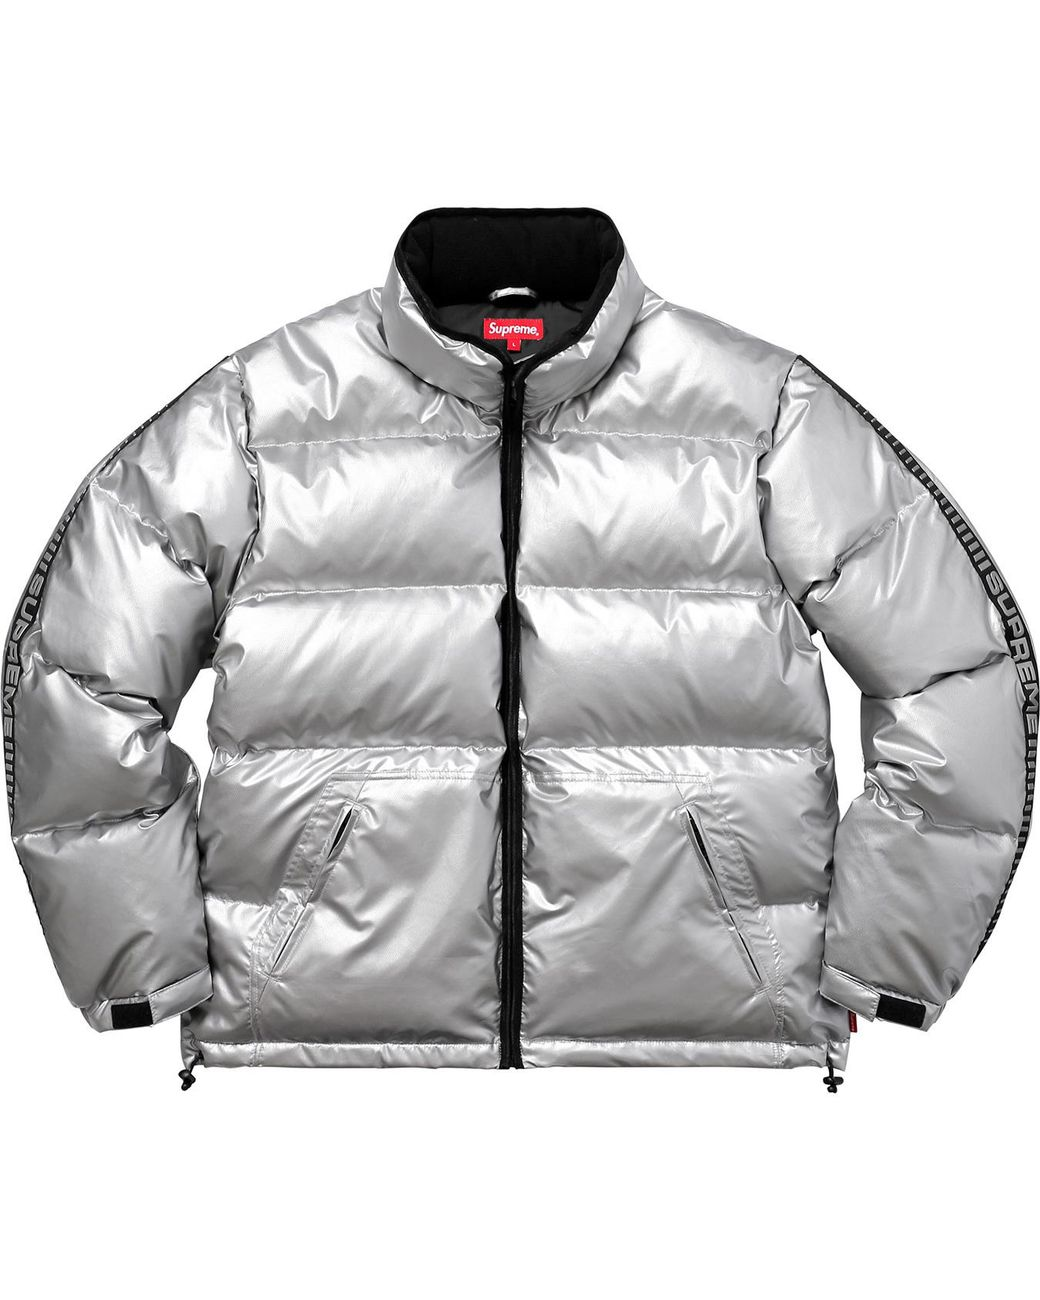 Supreme Reflective Sleeve Logo Puffy Jacket Silver In Metallic For